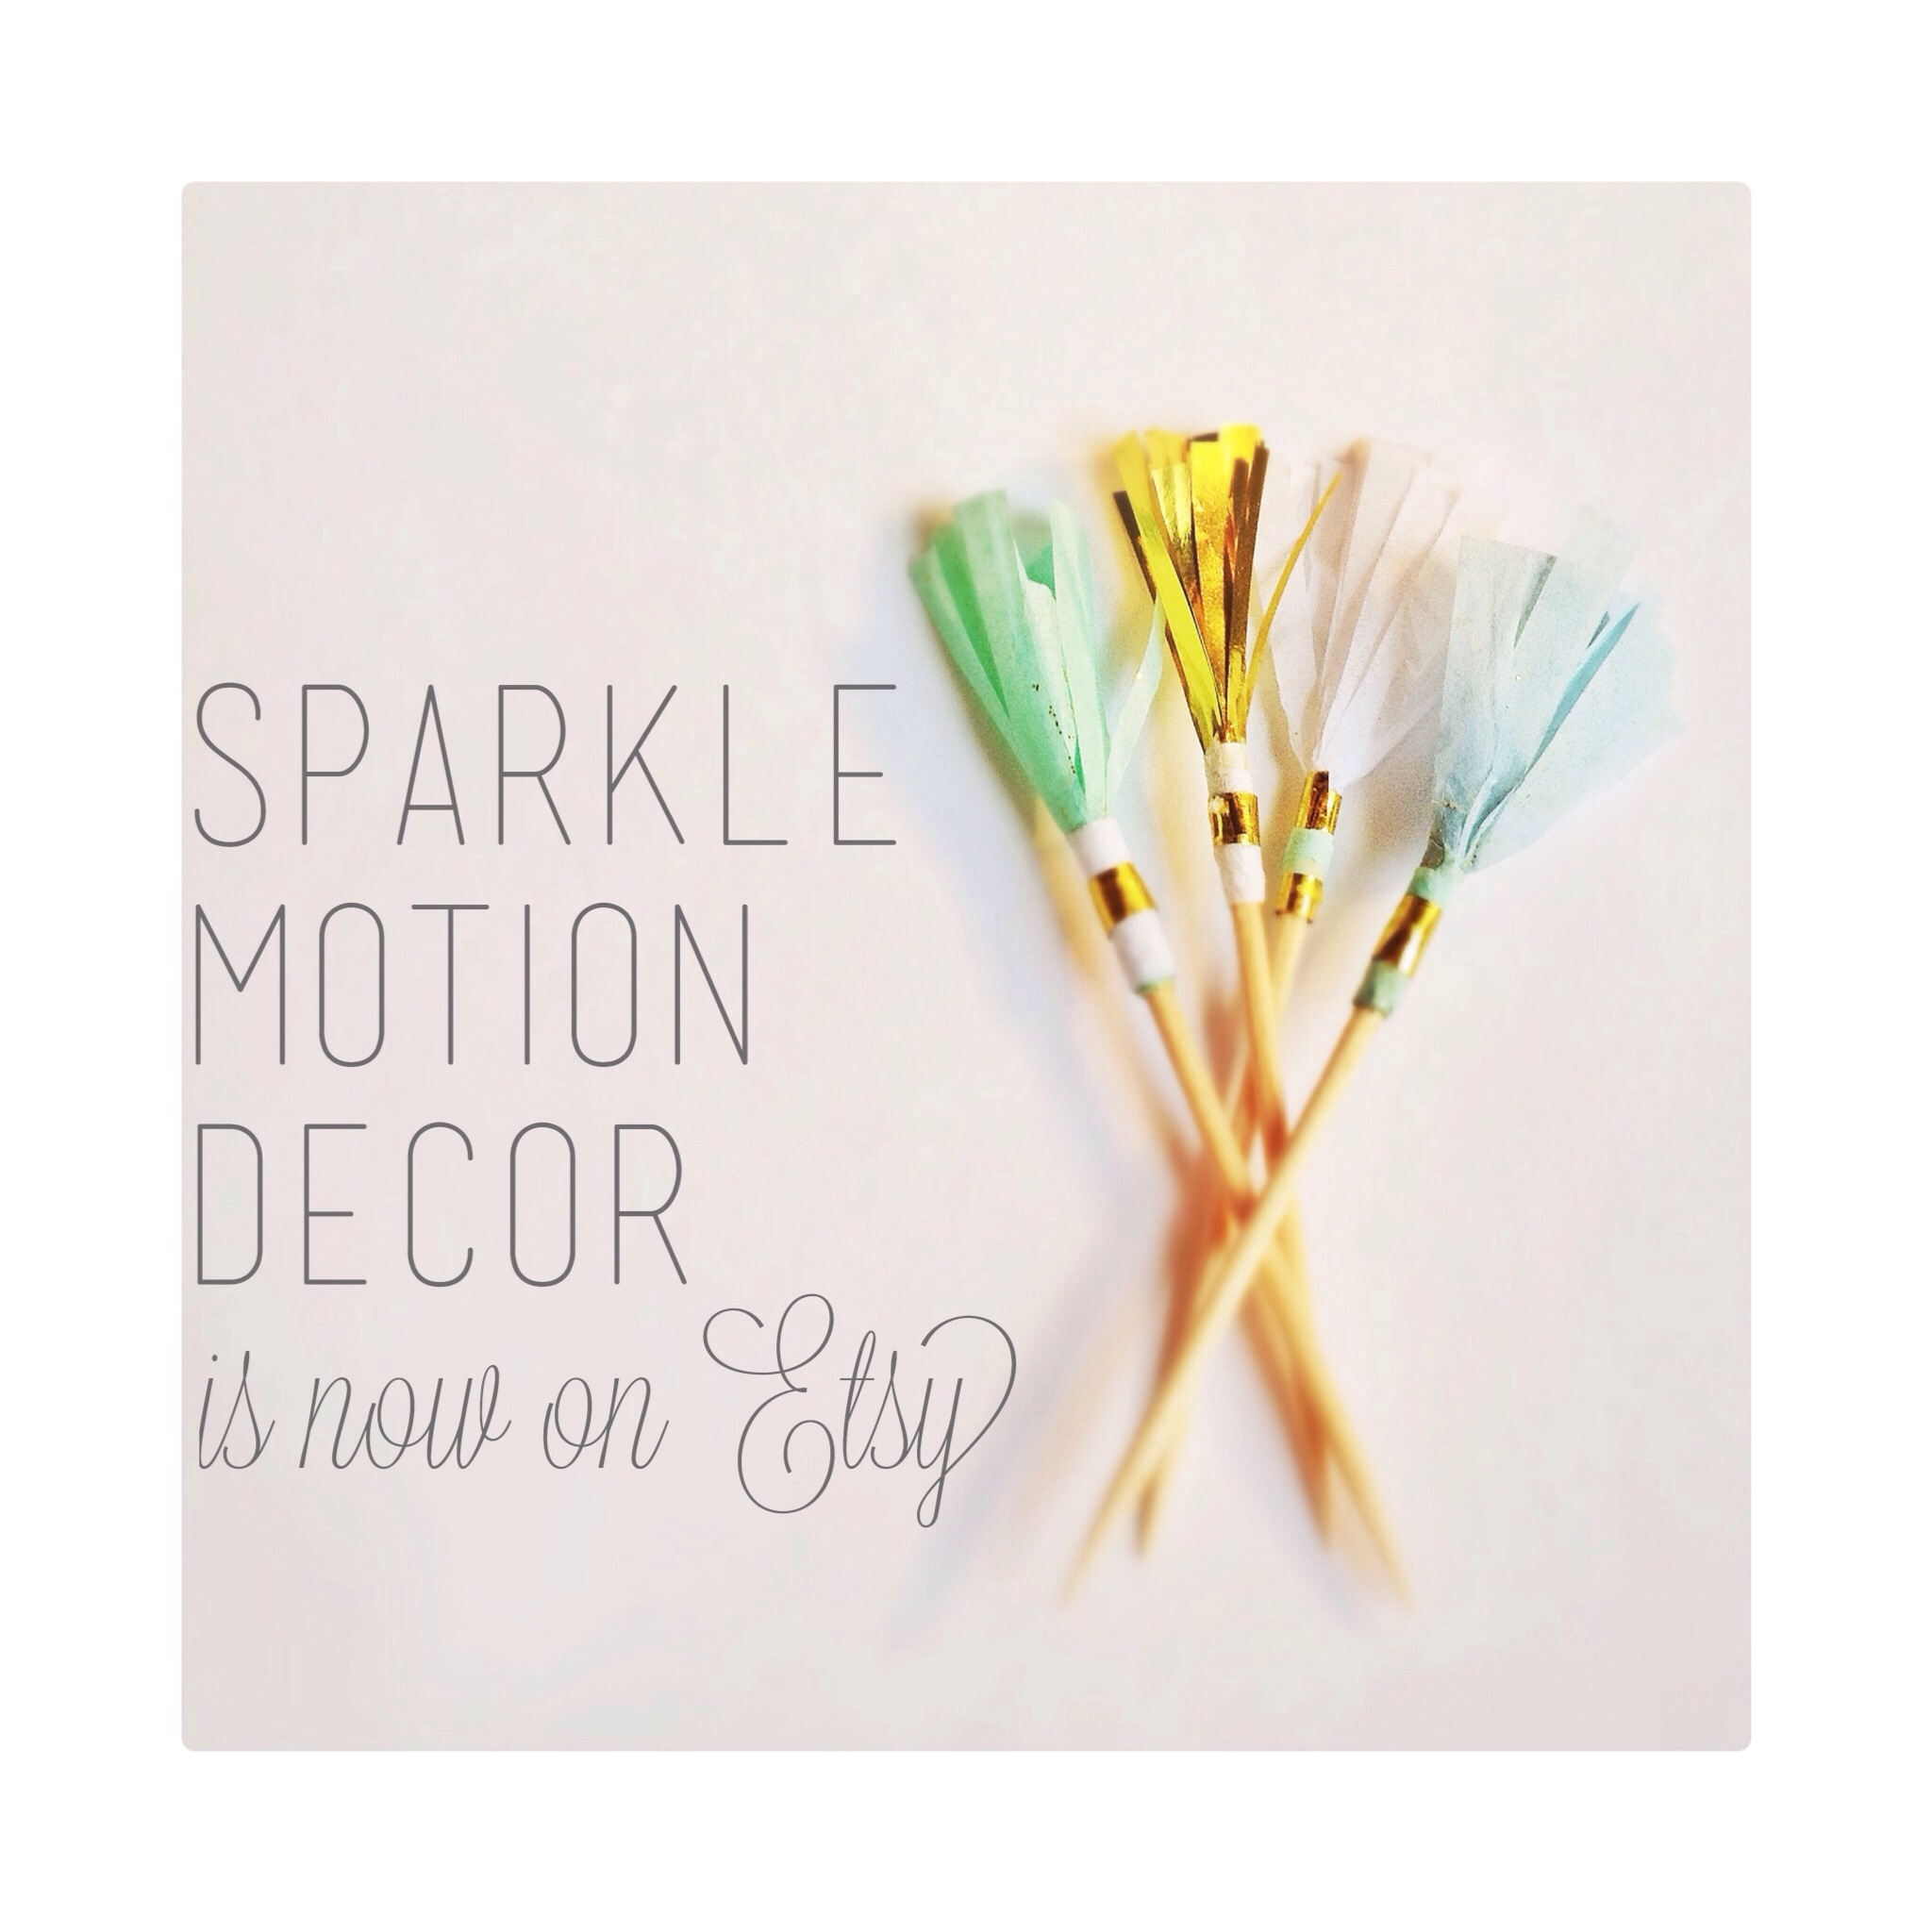 Sparkle Motion Decor is on Etsy!